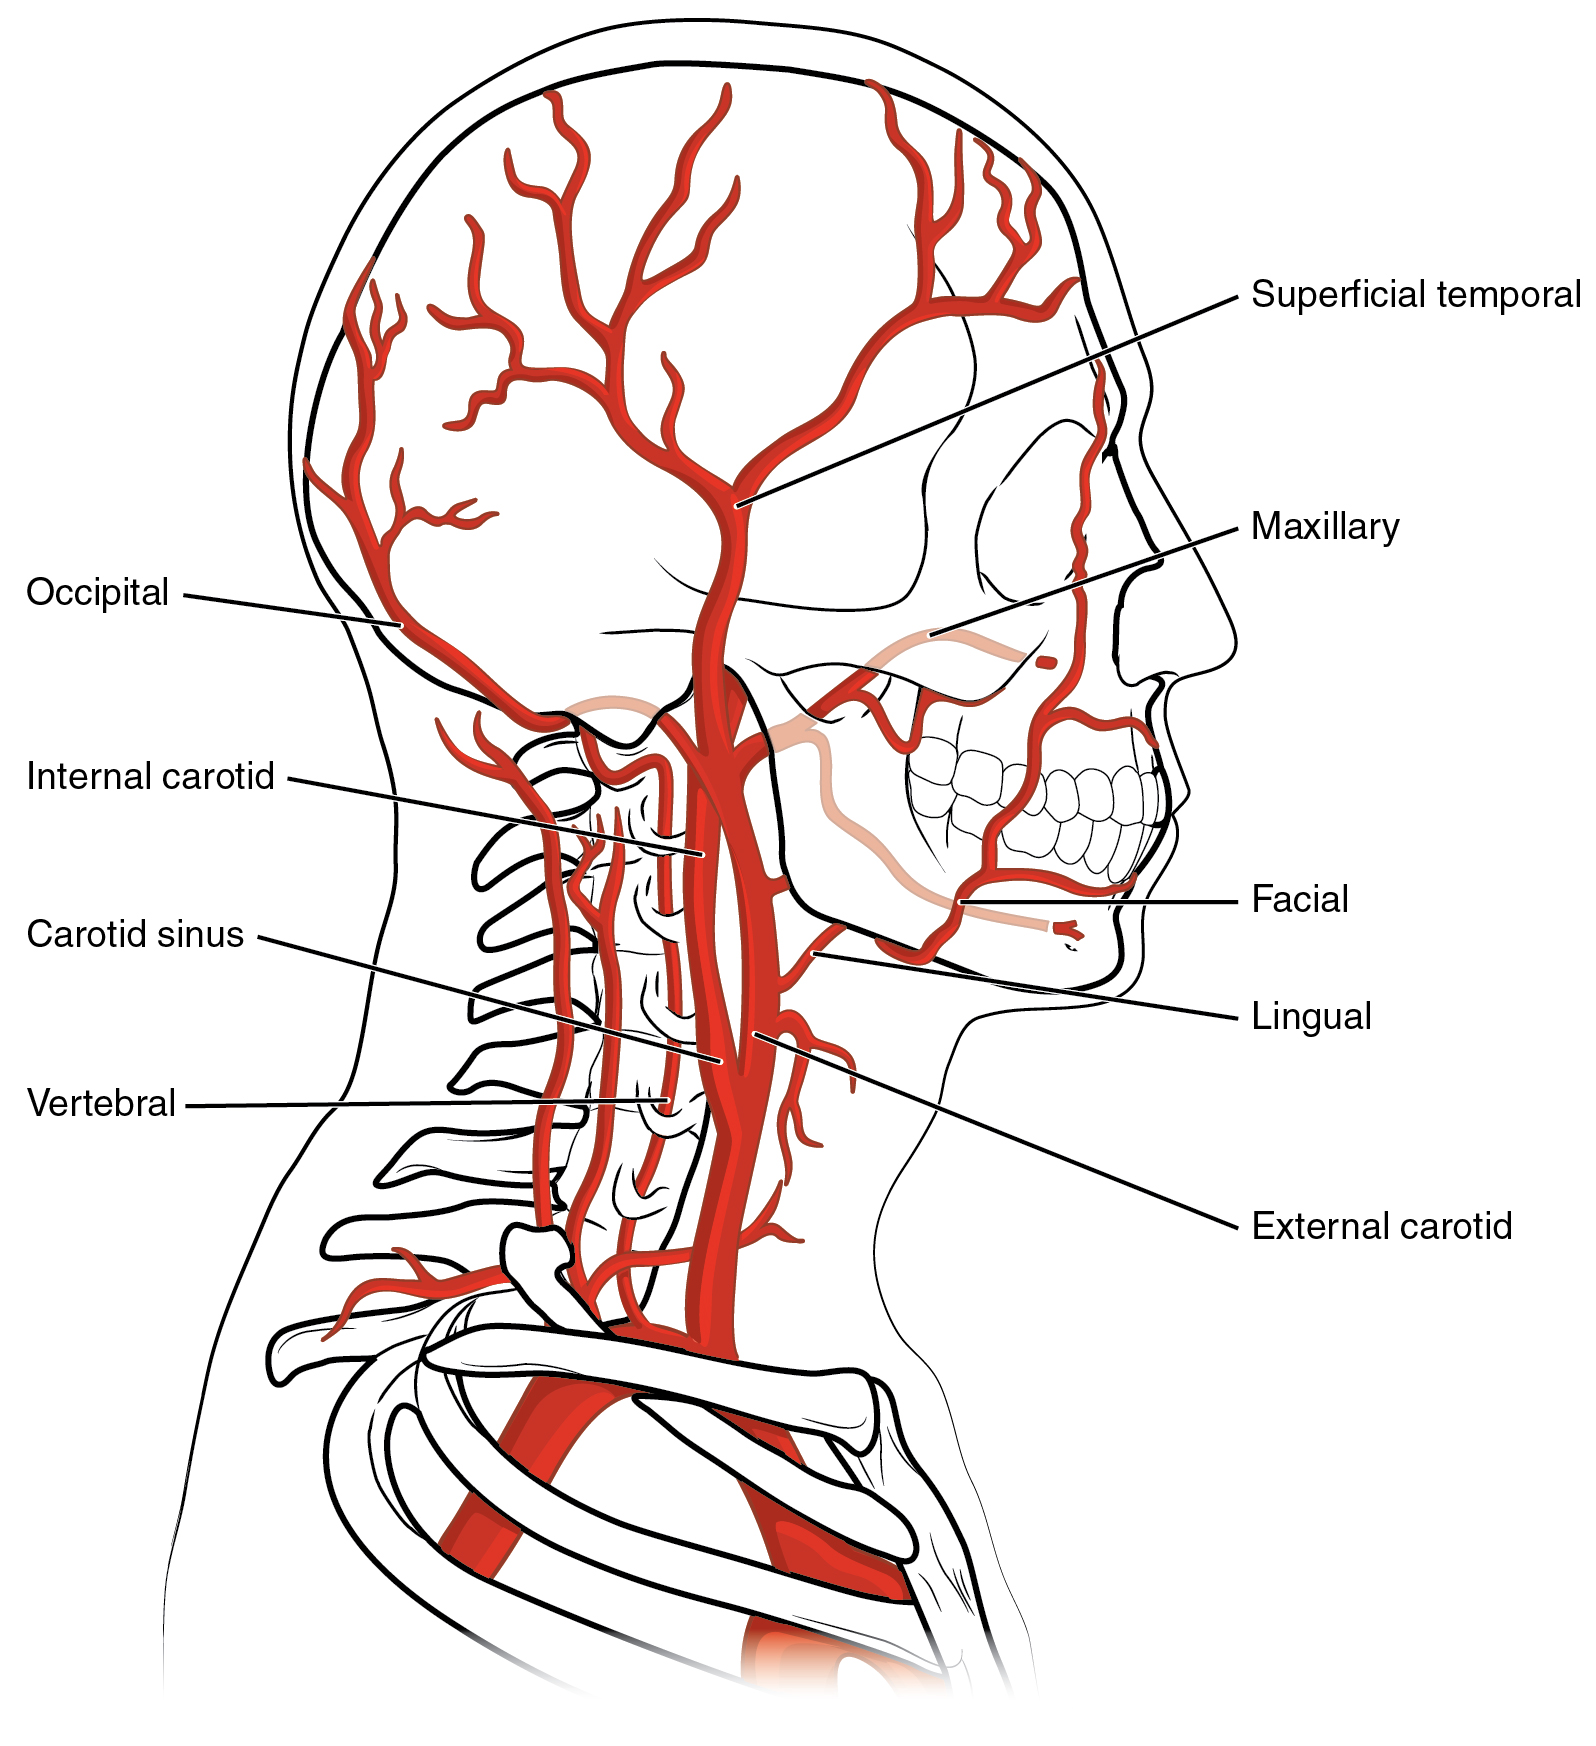 This diagram shows the blood vessels in the head and brain.